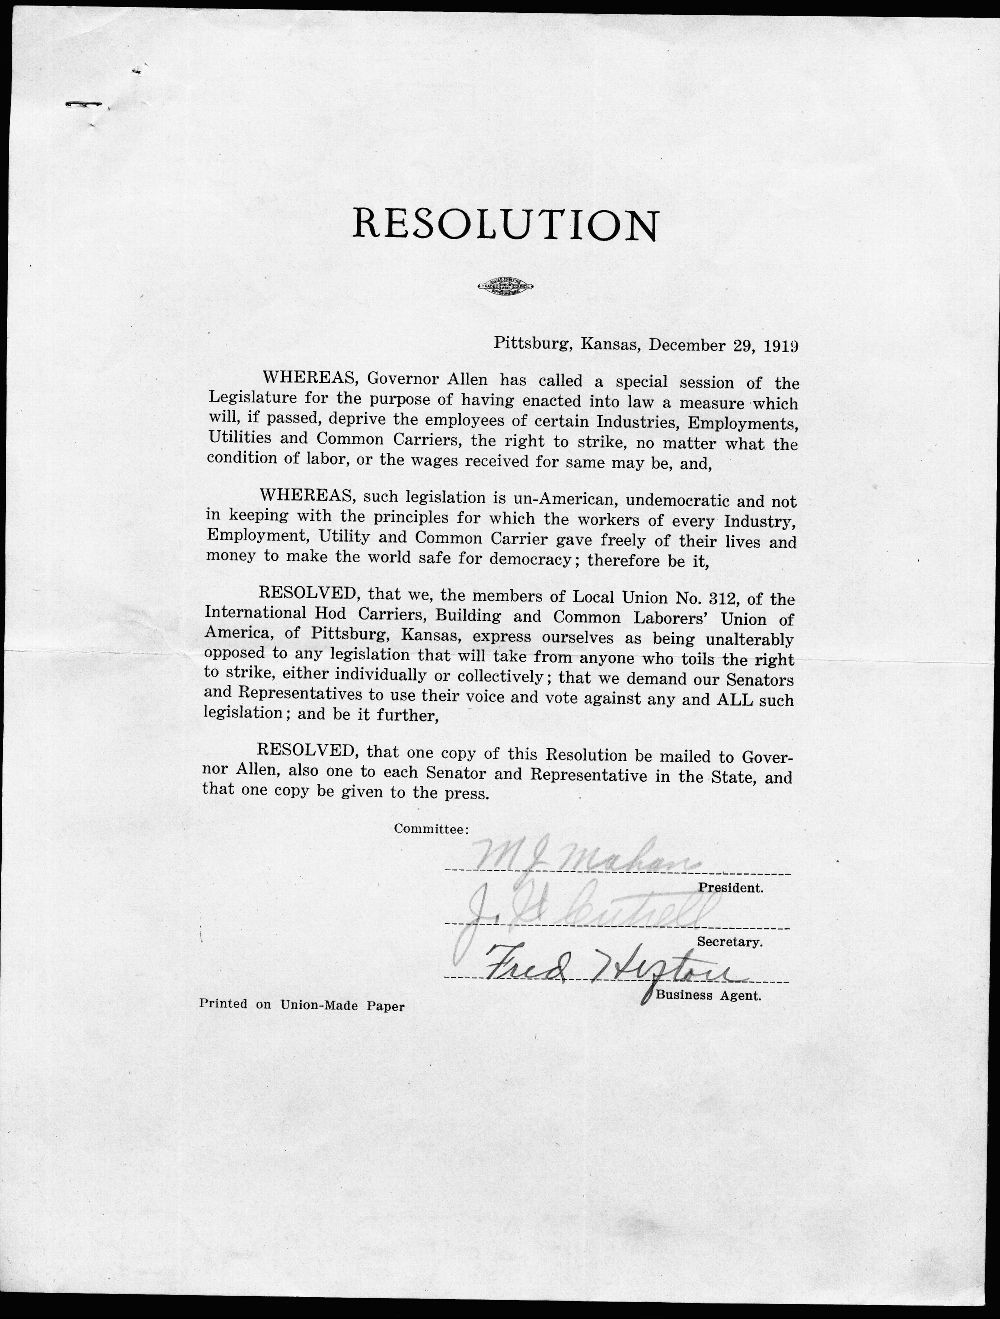 Resolution from the Local Union No. 312, International Hod Carriers, Building and Common Laborers' Union of America